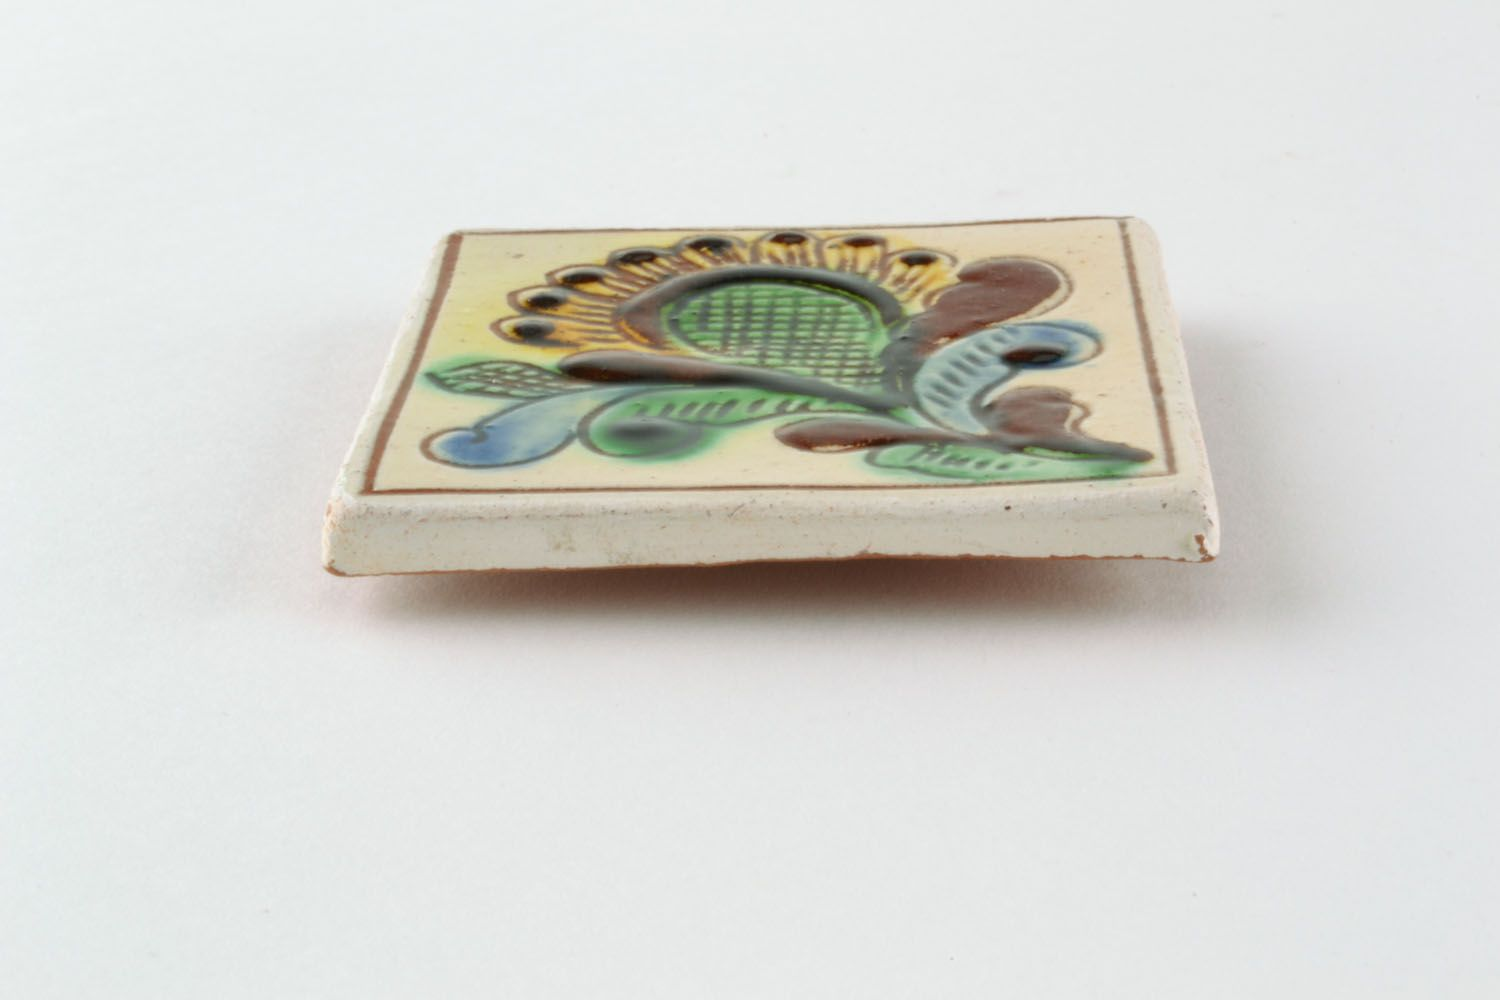 Ceramic fridge magnet photo 3